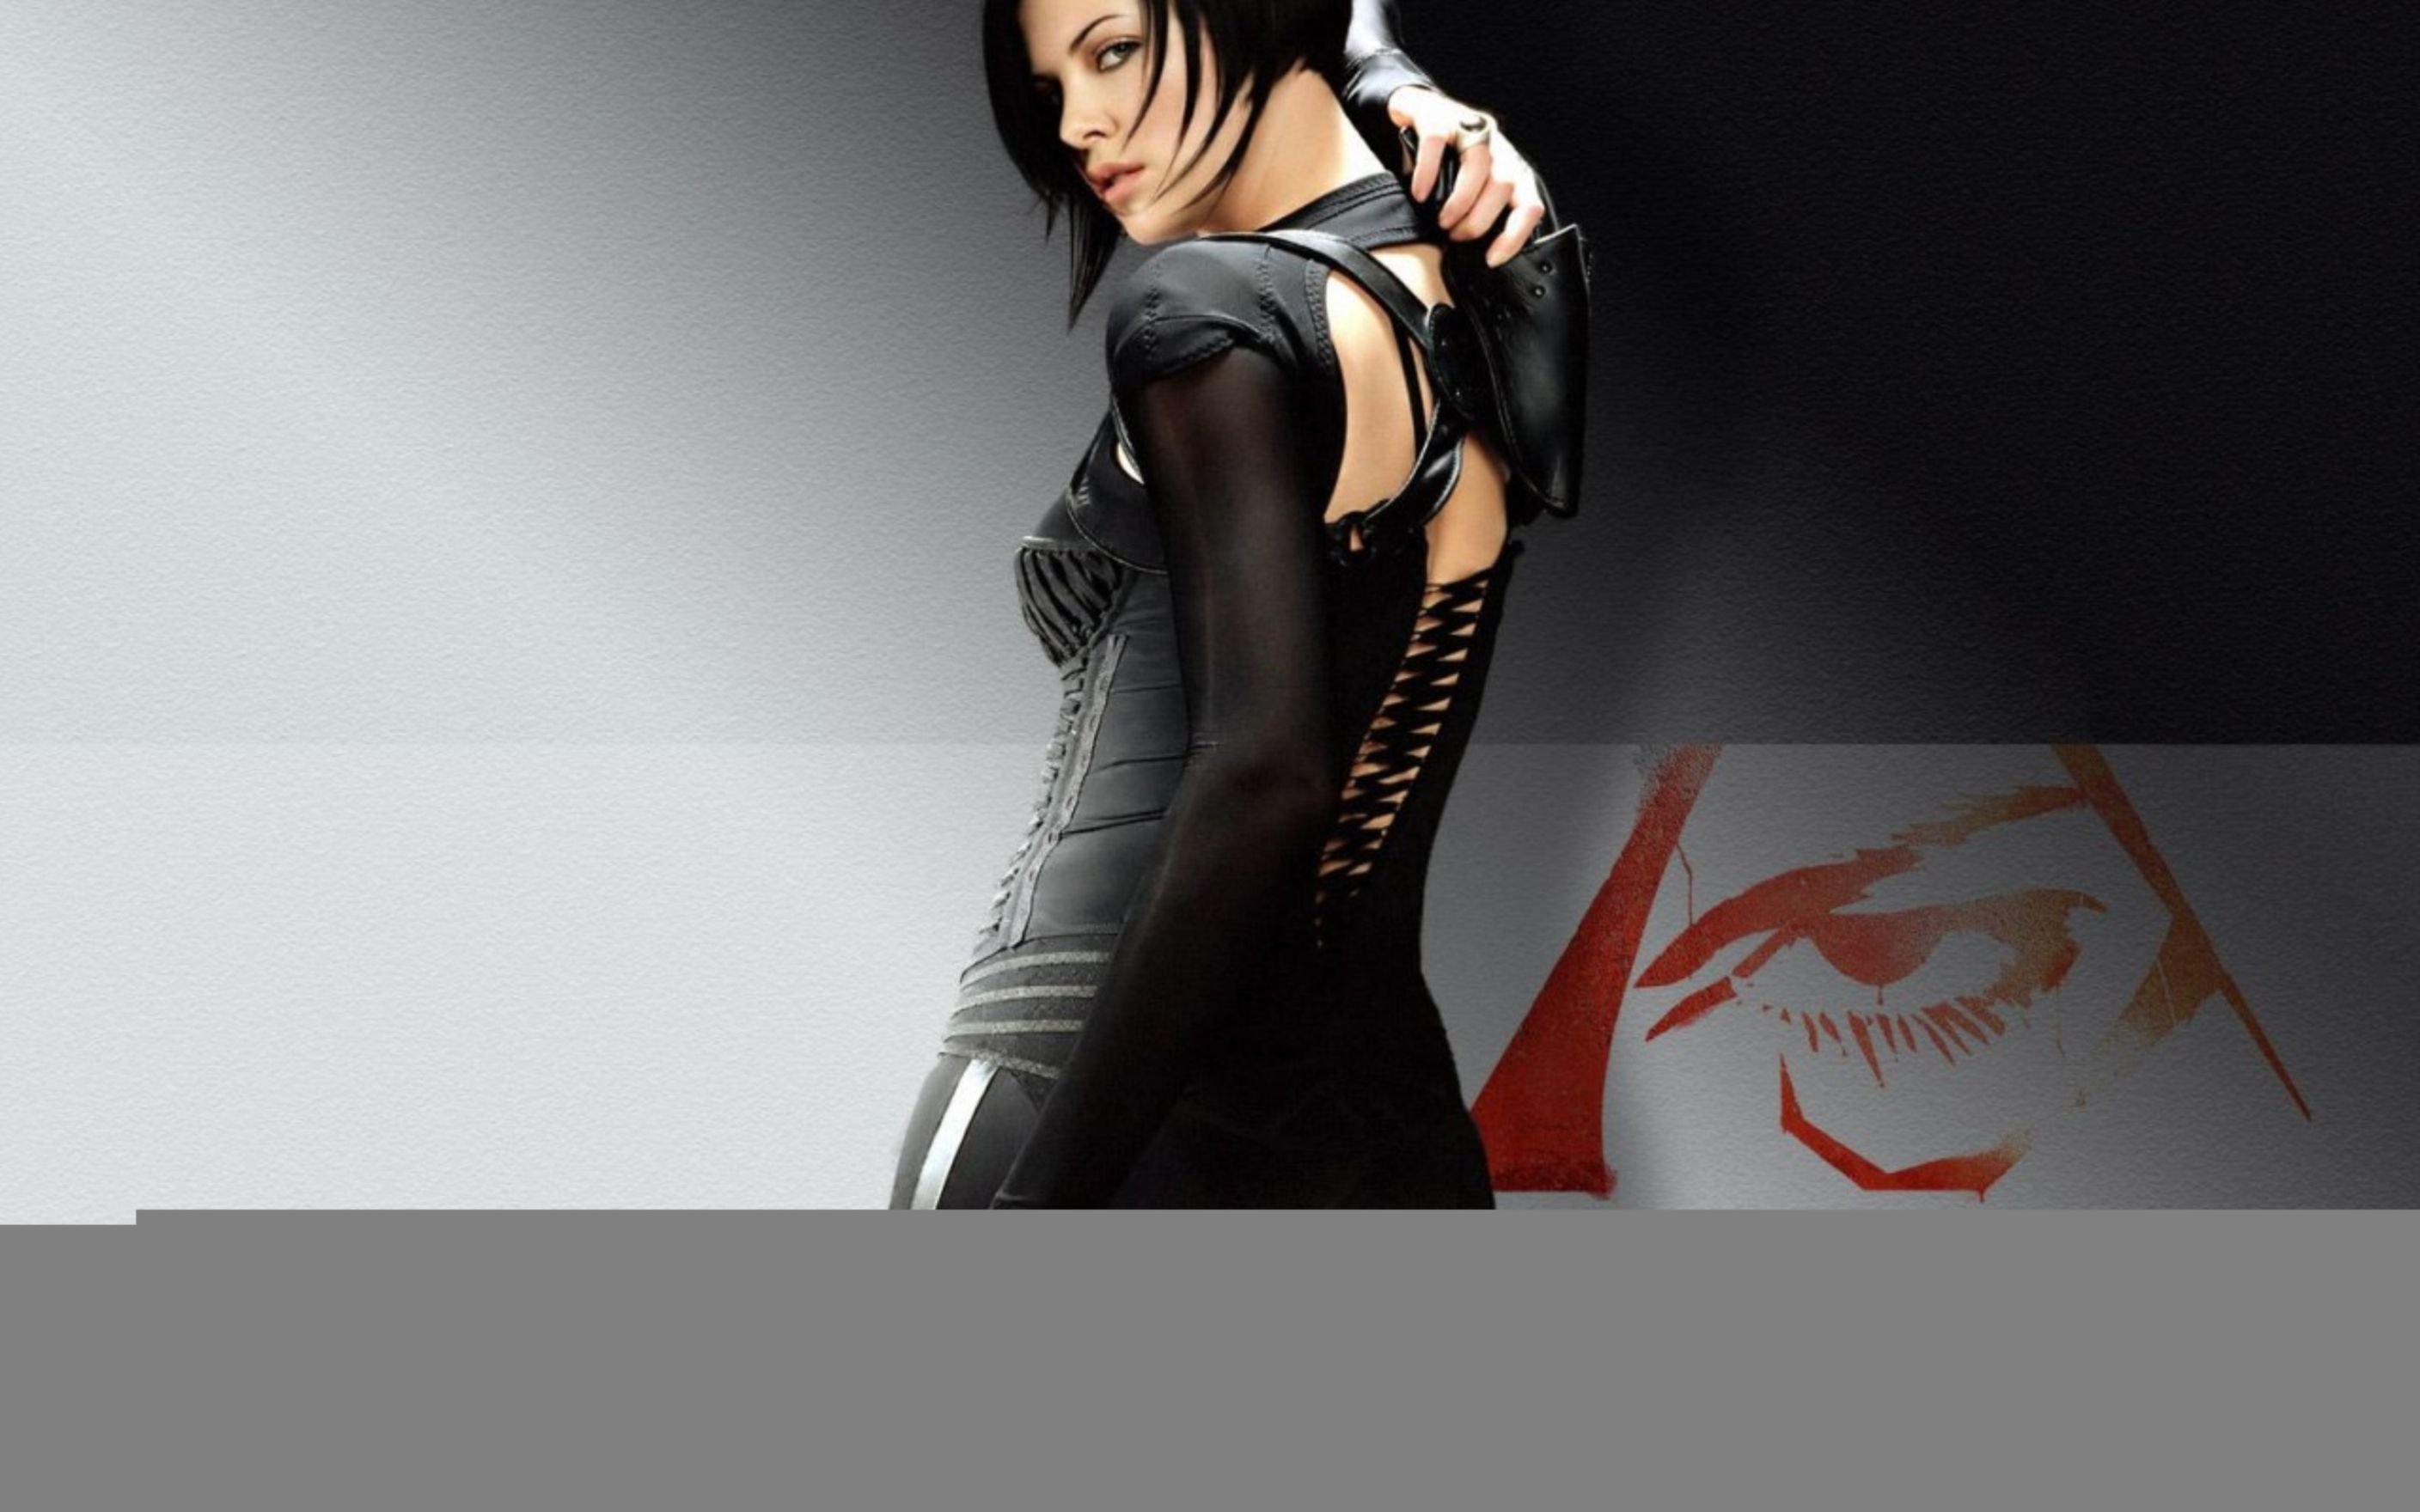 Download free HD Charlize Theron in Aeonflux Wallpaper, image